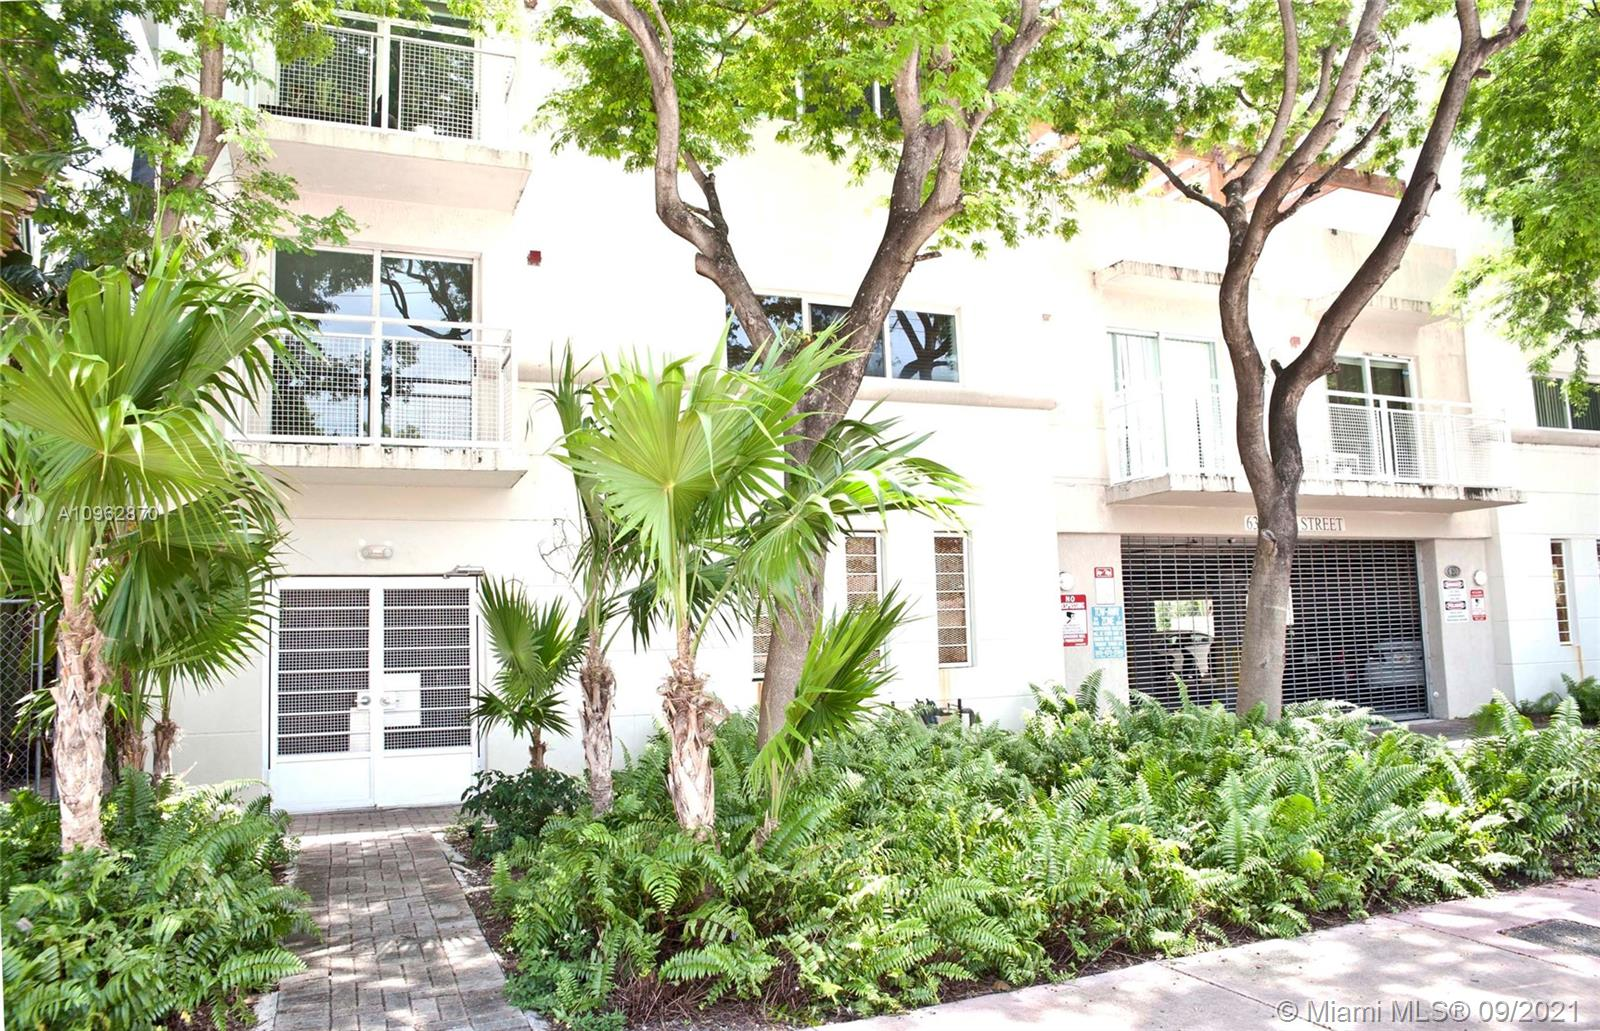 Beautiful 1Br/1Ba condo in a newer, boutique building in quiet Miami Beach neighborhood. Open concept kitchen. Washer & dryer inside. Impact windows. One assigned parking space in a covered garage. Only 18 units in the building which provides lots of privacy. Super close to the beach and Bal Harbor Shops. Perfect for a first time home buyer, vacation home or rental investment. Easy to show.